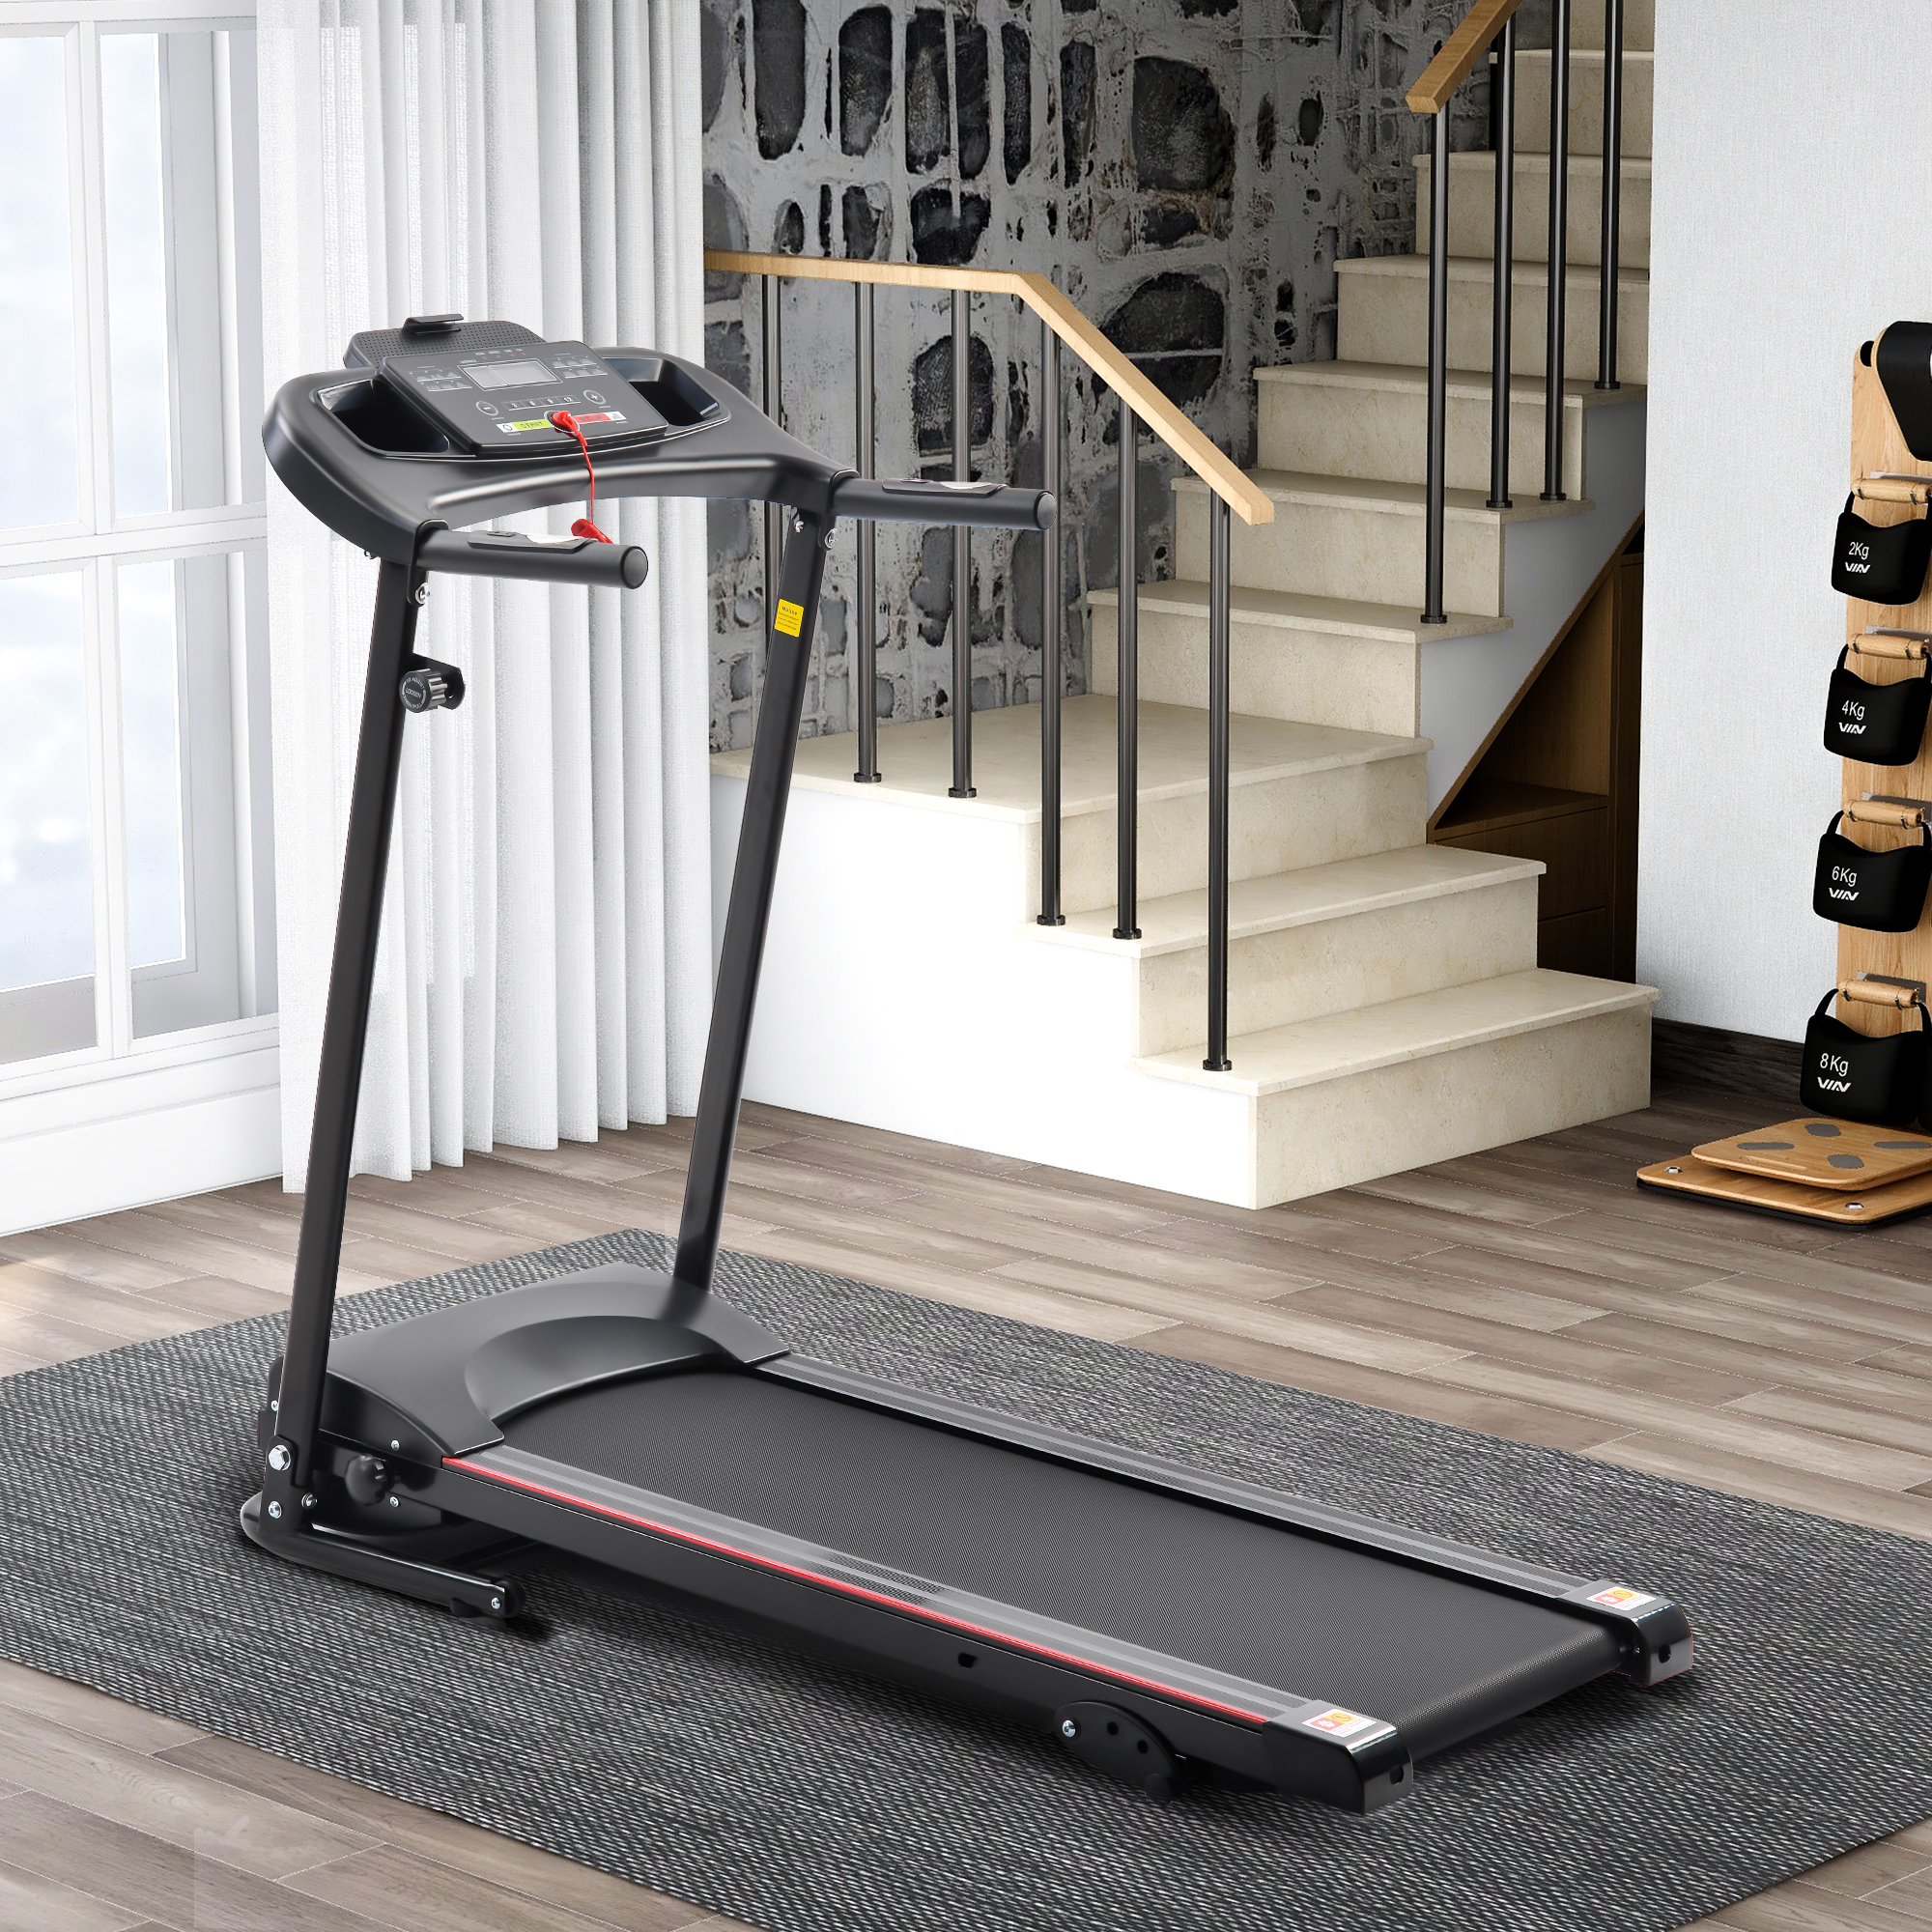 [US Direct] Krd-Jk1609A Folding Electric Treadmill Running Machine For Home Black With 3 Manual Inclines